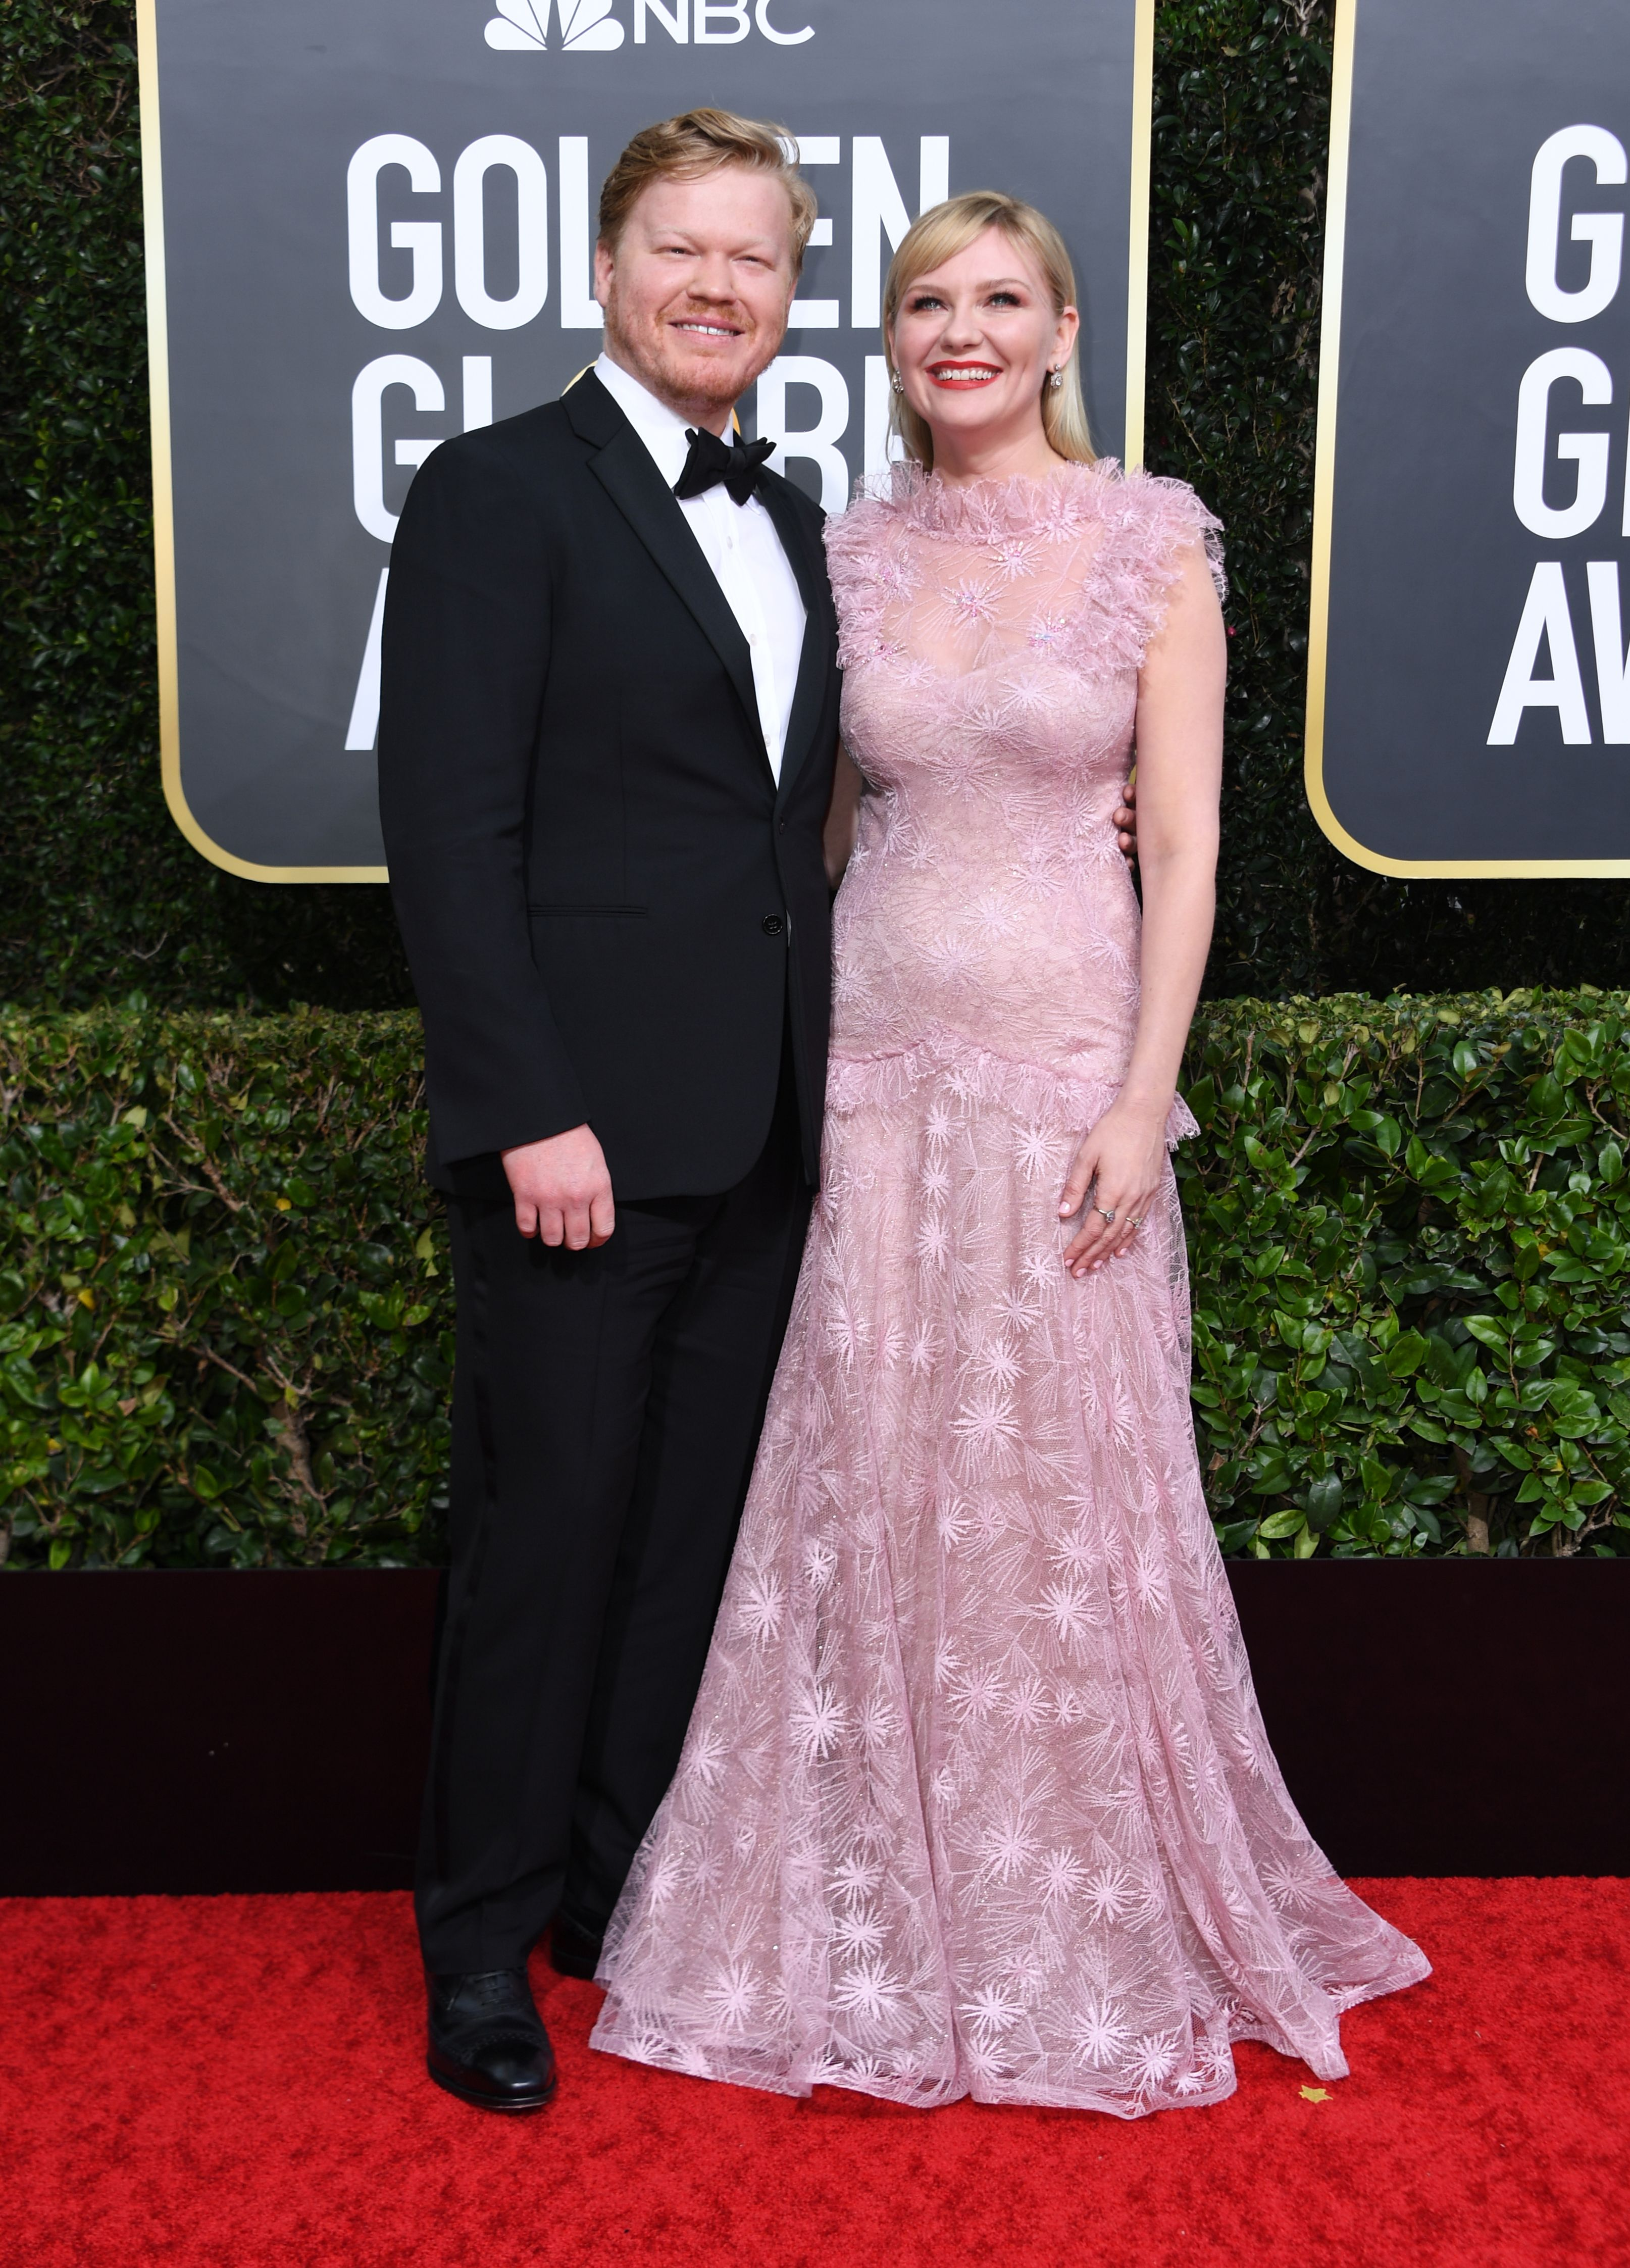 US actres Kirsten Dunst and her partner actor Jesse Plemons arrive for the 77th annual Golden Globe Awards on January 5, 2020, at The Beverly Hilton hotel in Beverly Hills, California. (Photo by VALERIE MACON / AFP) (Photo by VALERIE MACON/AFP via Getty Images)